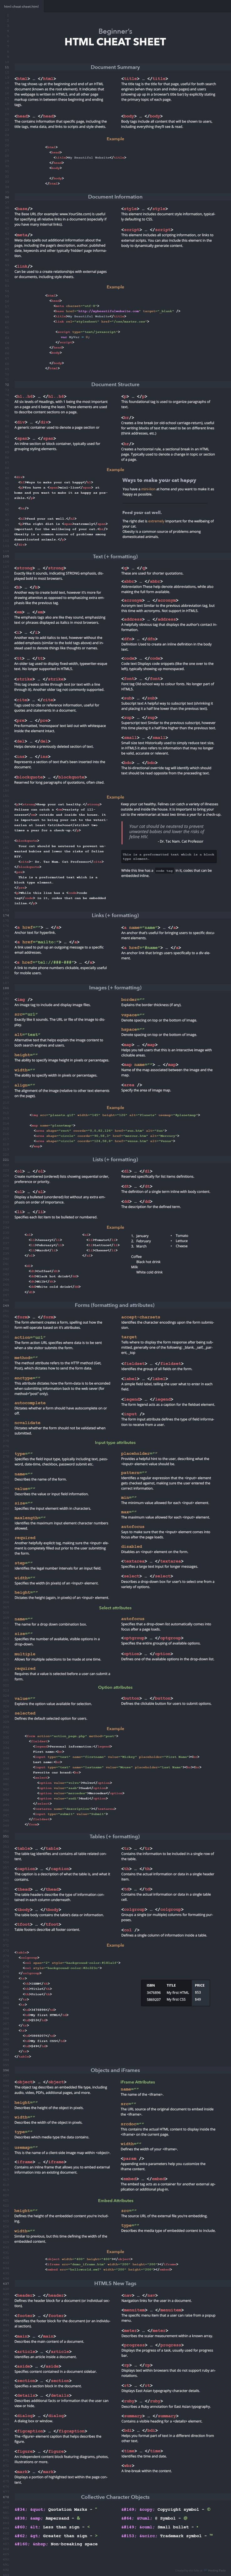 Whether you're learning HTML or you're a practiced hand and need a refresher, this HTML cheat sheet gives you a quick reference for commonly used tags, what they do, how to use them, and examples of how they work.